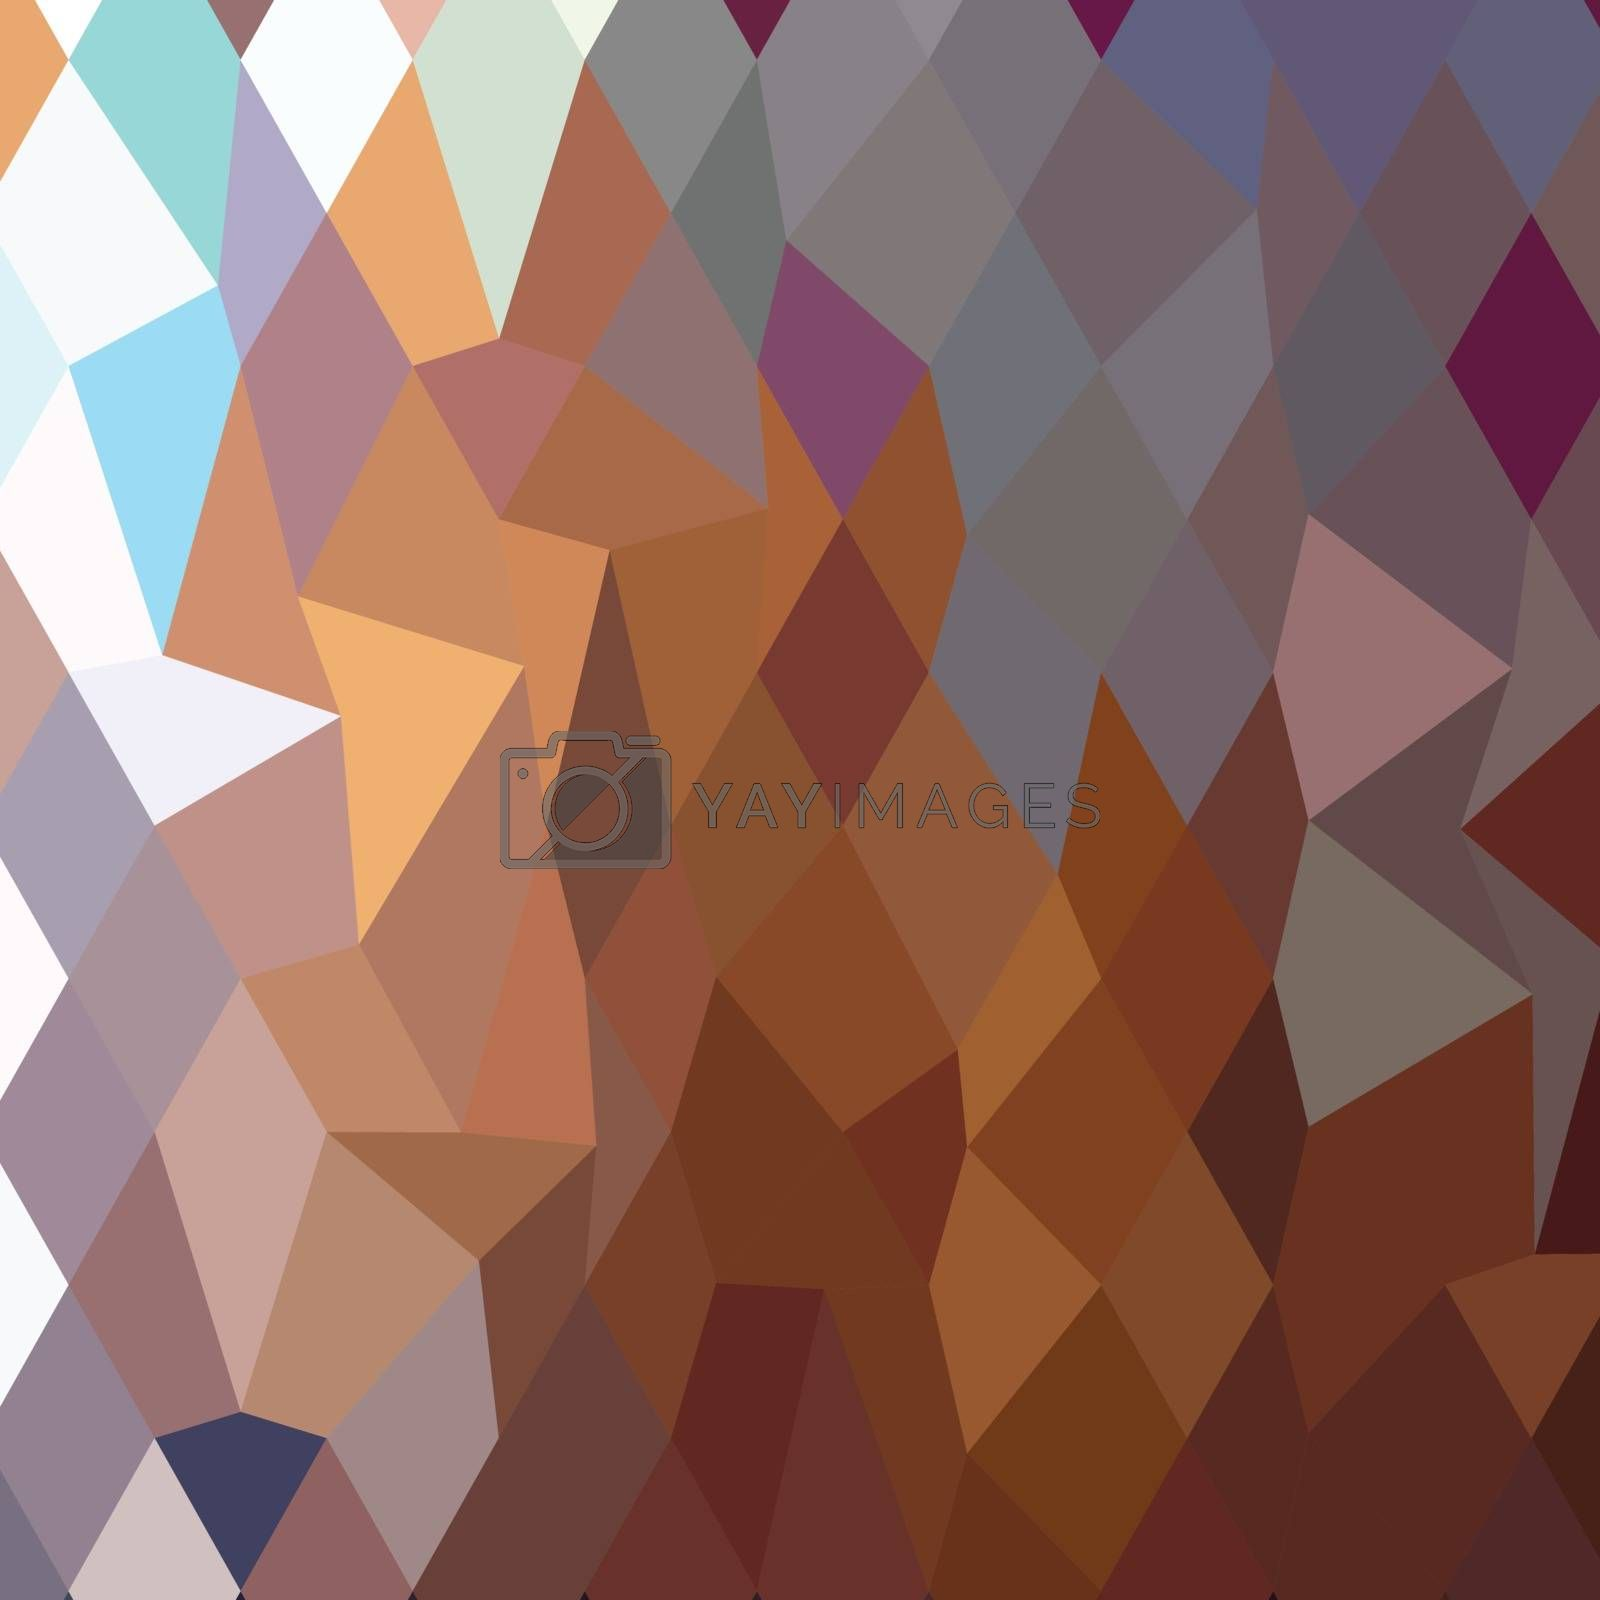 Low polygon style illustration of cocoa brown abstract geometric background.